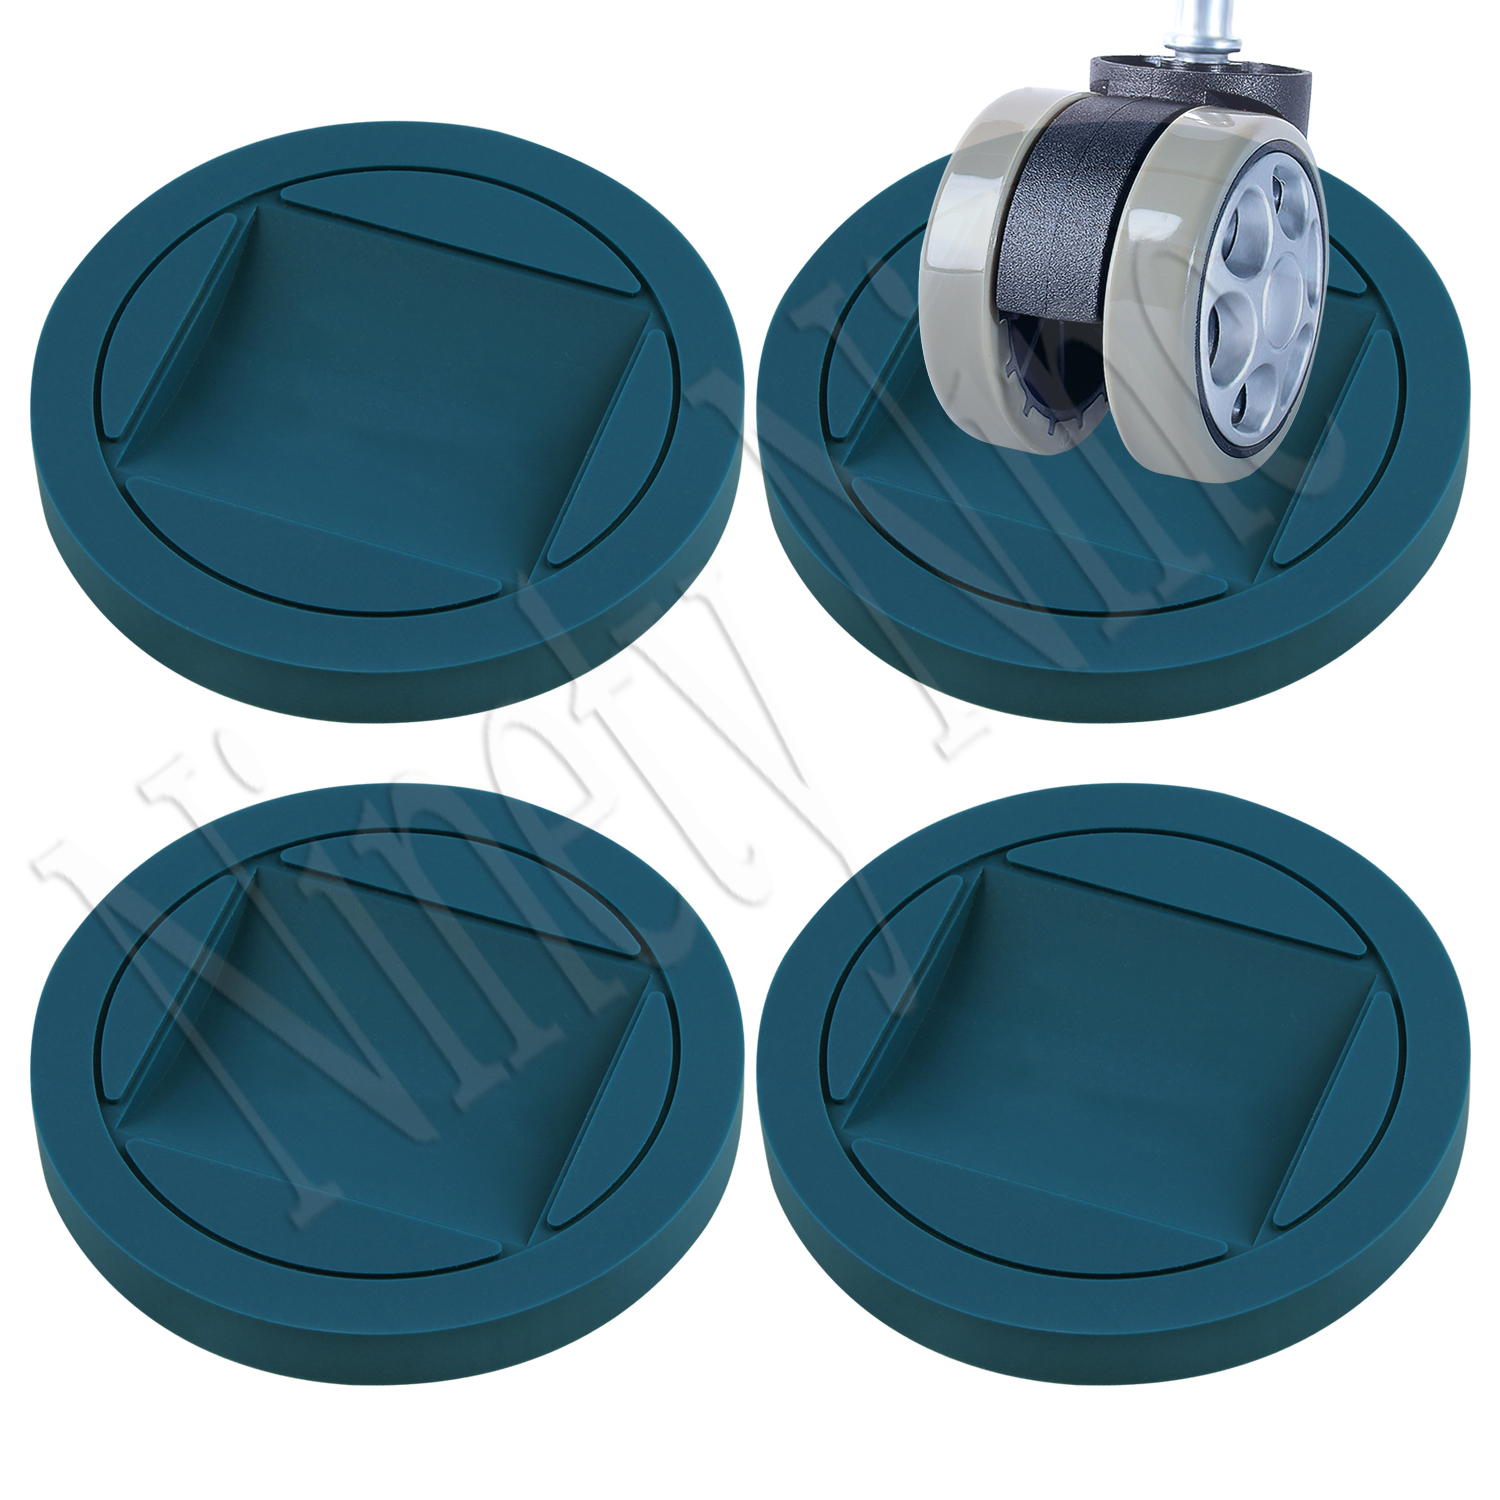 4PCS Rubber Furniture Cups  Premium Caster Cups Furniture Coasters Bed Stoppers Floor Protectors For All Floors Wheels